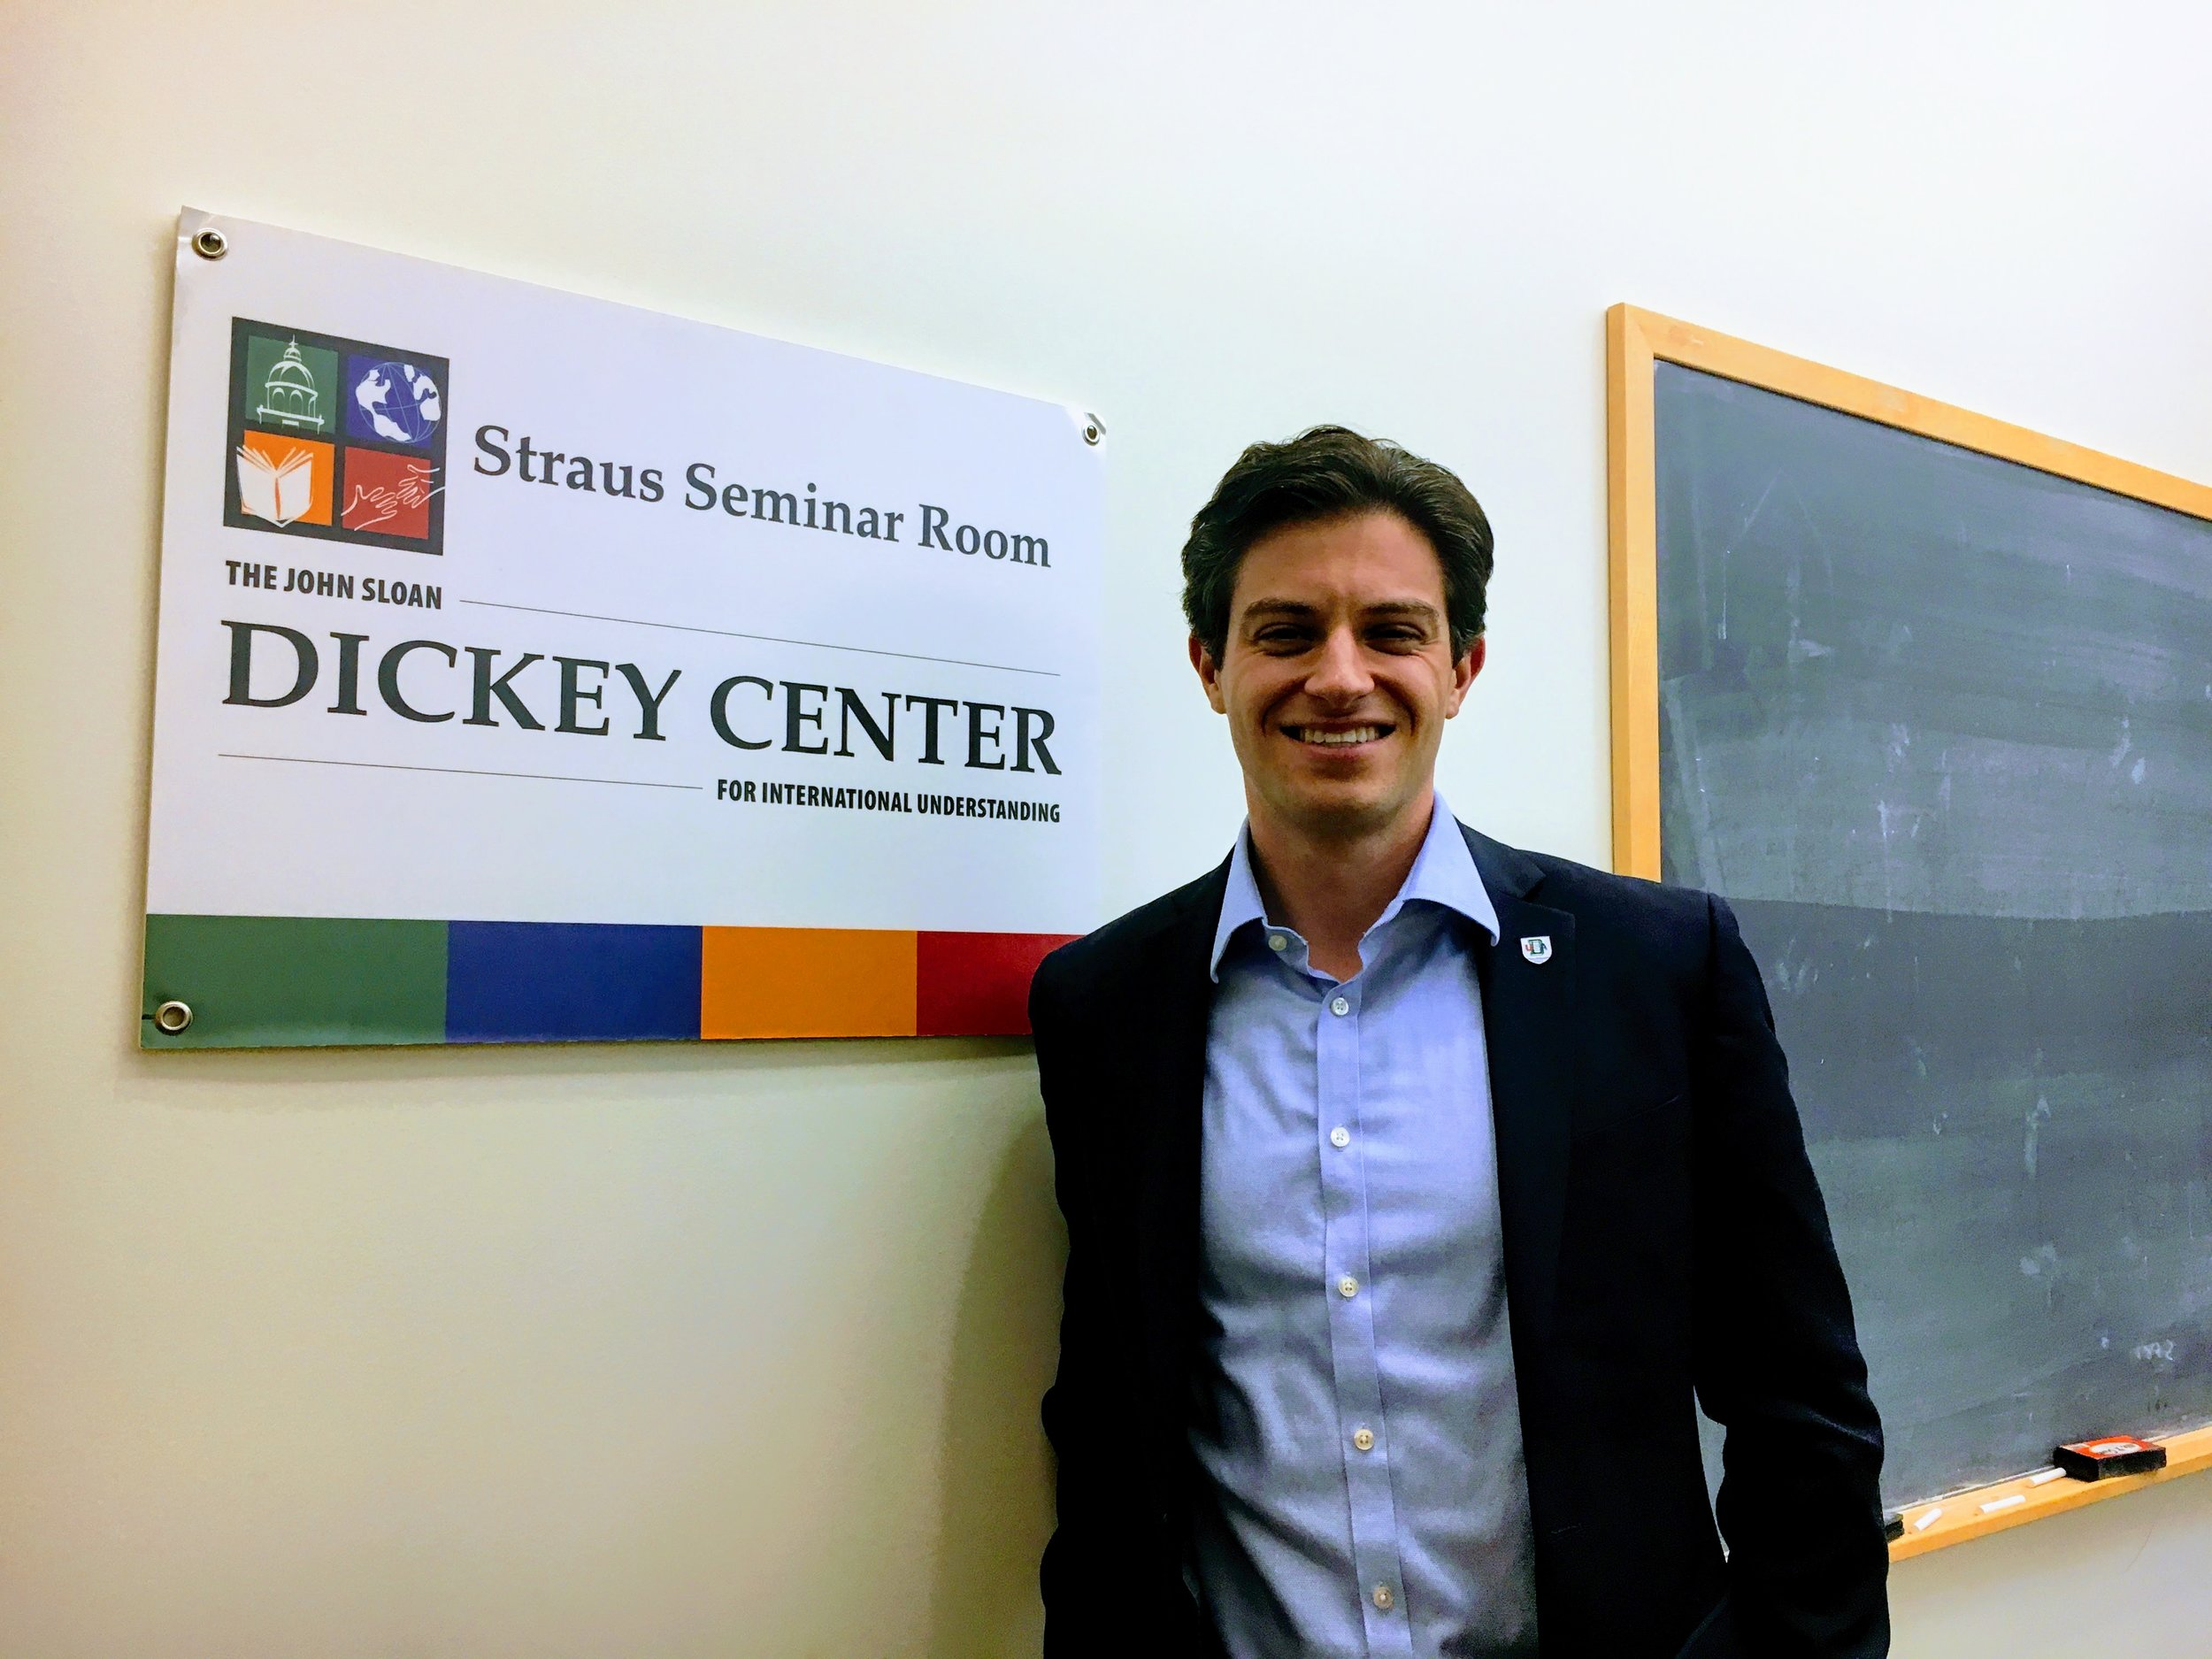 Nathan speaking at the Dickey Center for International Understanding as part of his work as President of the Dartmouth Uniformed Service Alumni